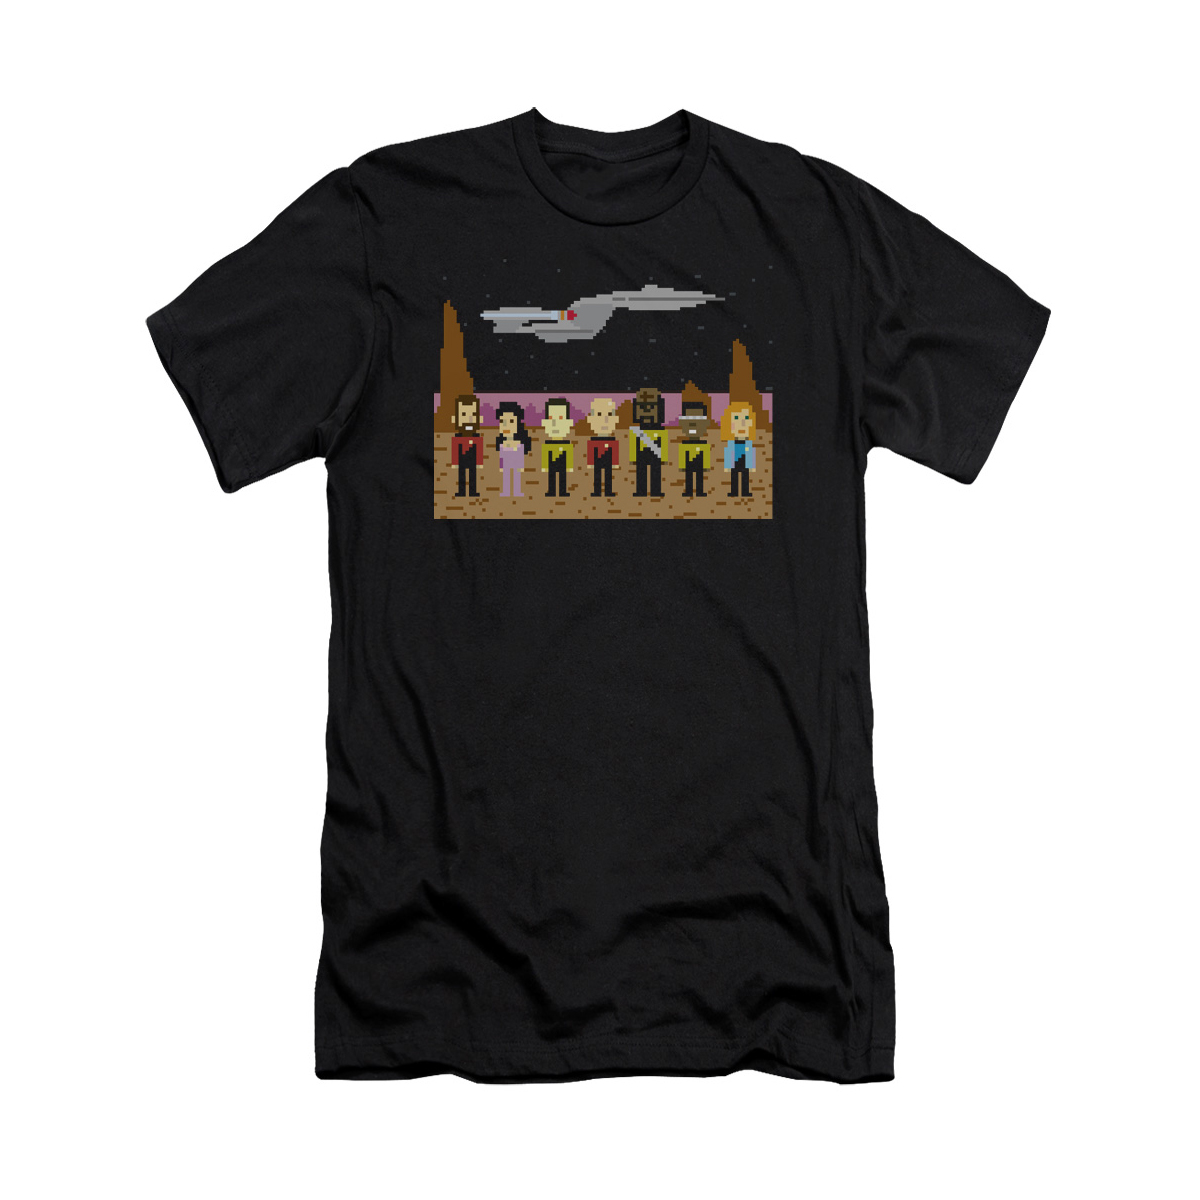 Star Trek The Next Generation Pixel T-Shirt